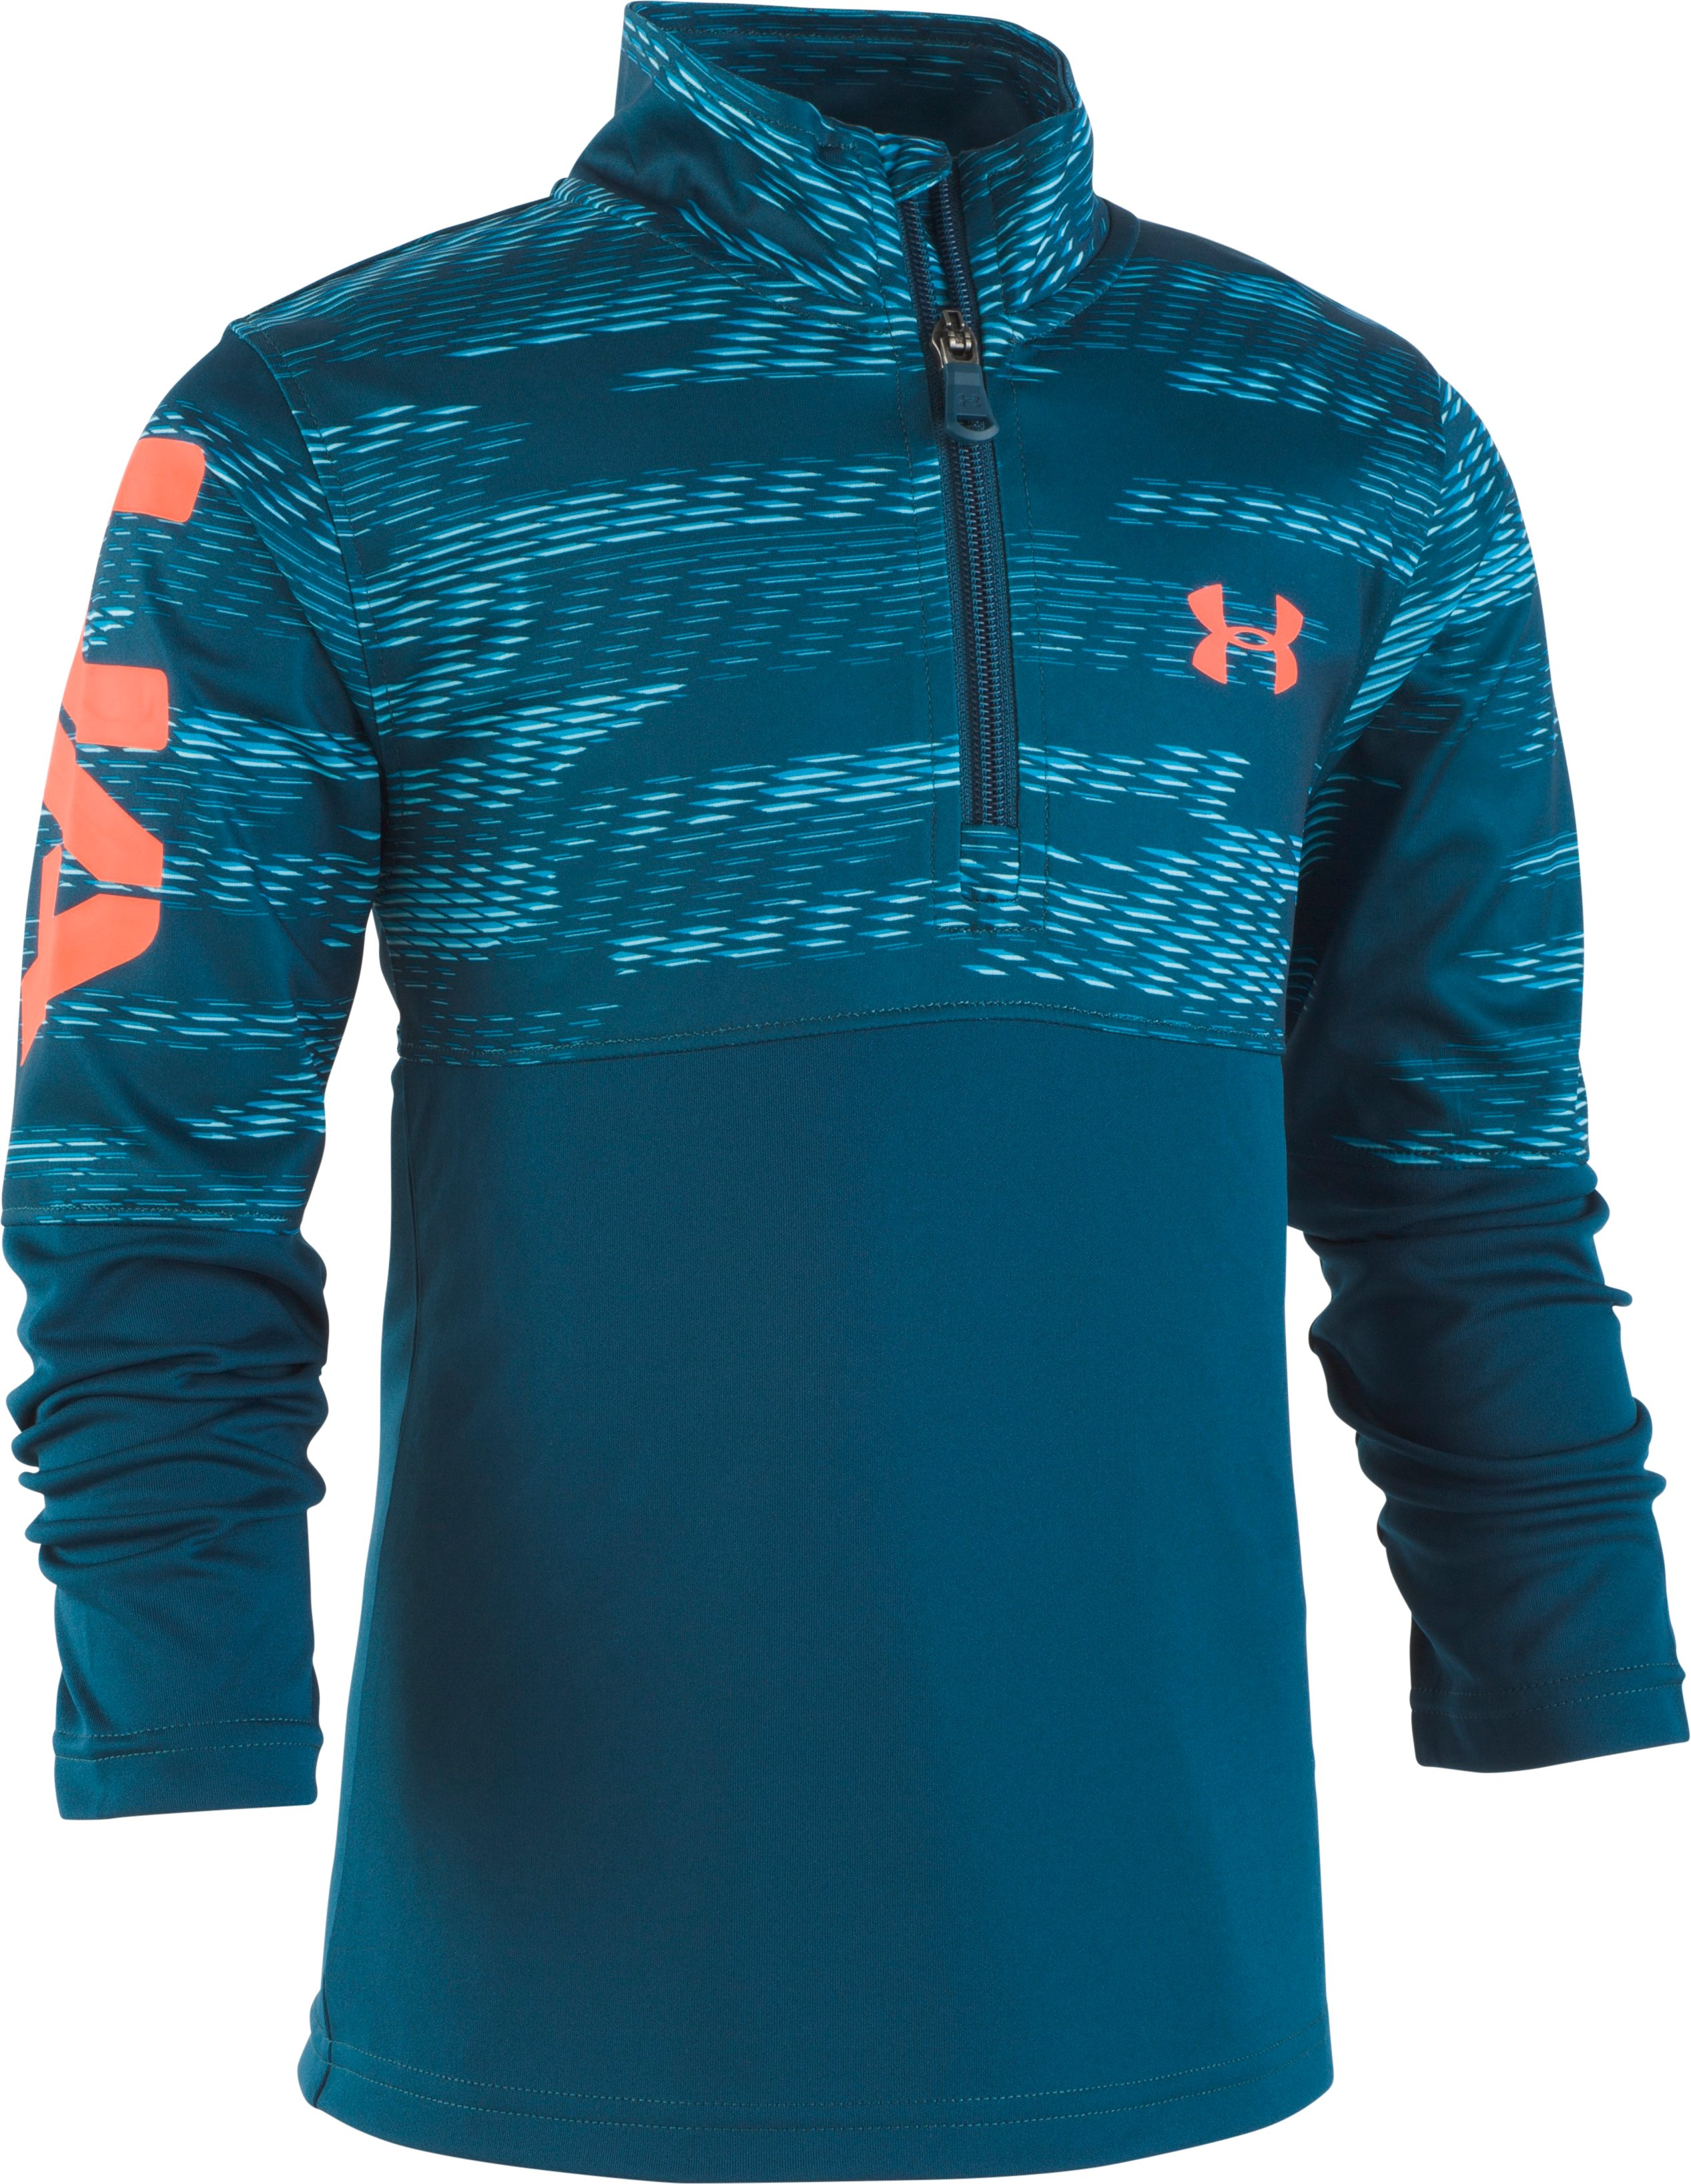 Boys' Pre-School UA Travel ¼ Zip, Techno Teal